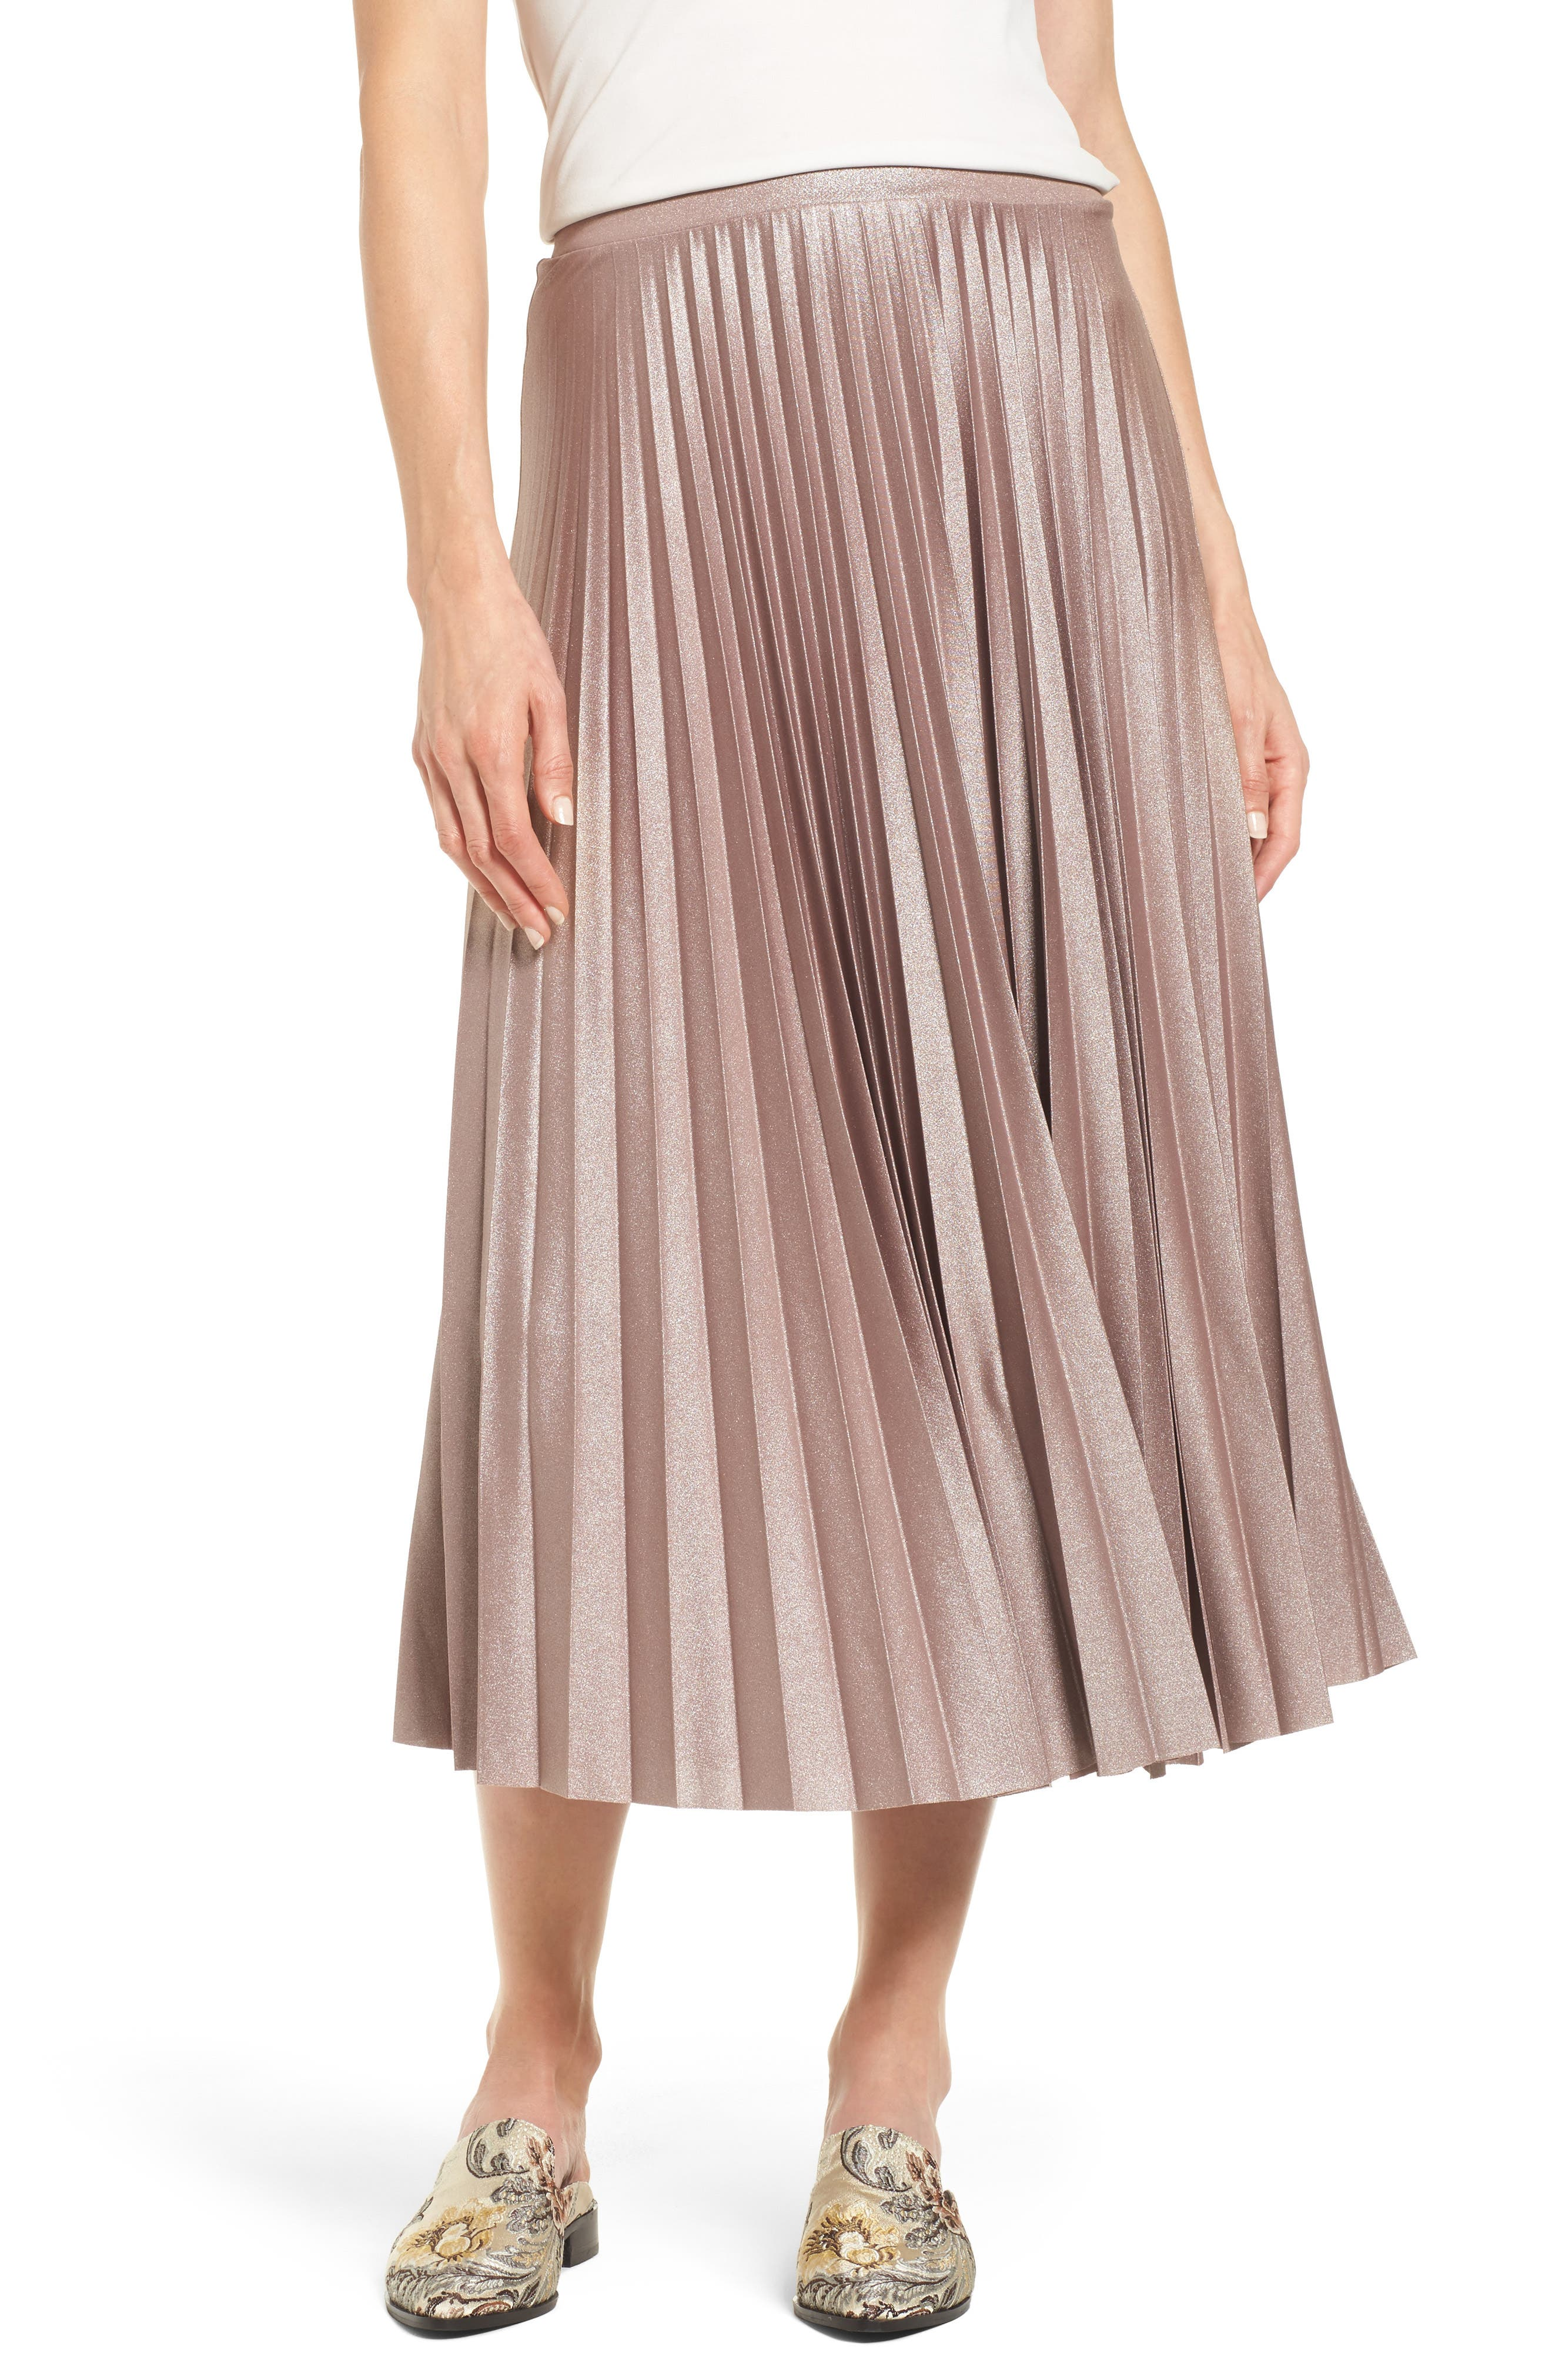 Skirts: A-Line, Pencil, Maxi, Miniskirts & More | Nordstrom ...